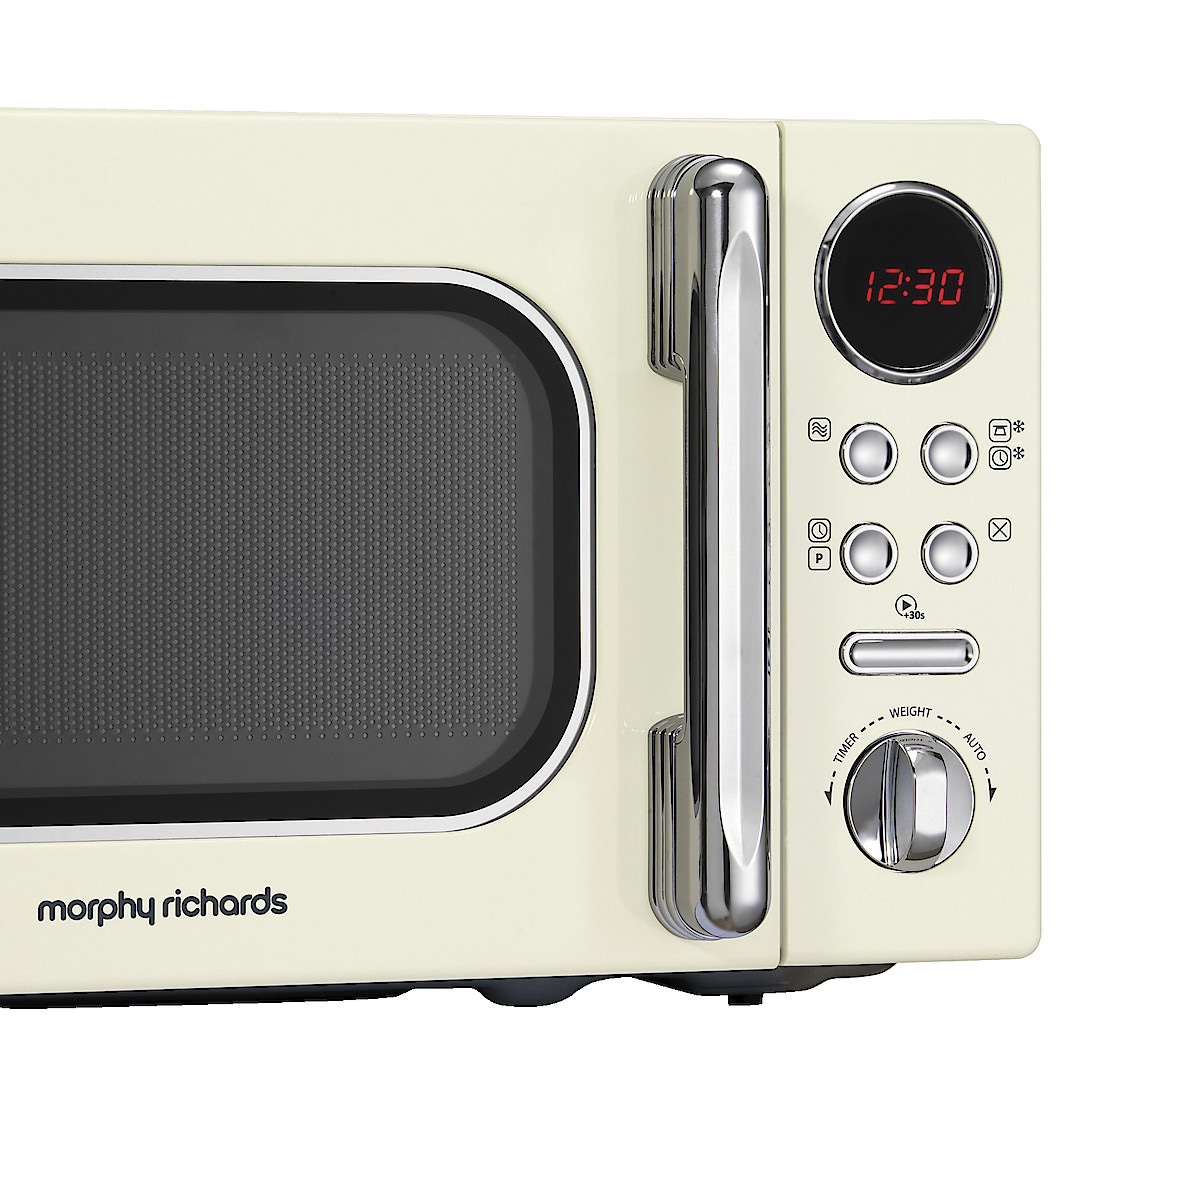 Morphy Richards 20L Accents Microwave Oven